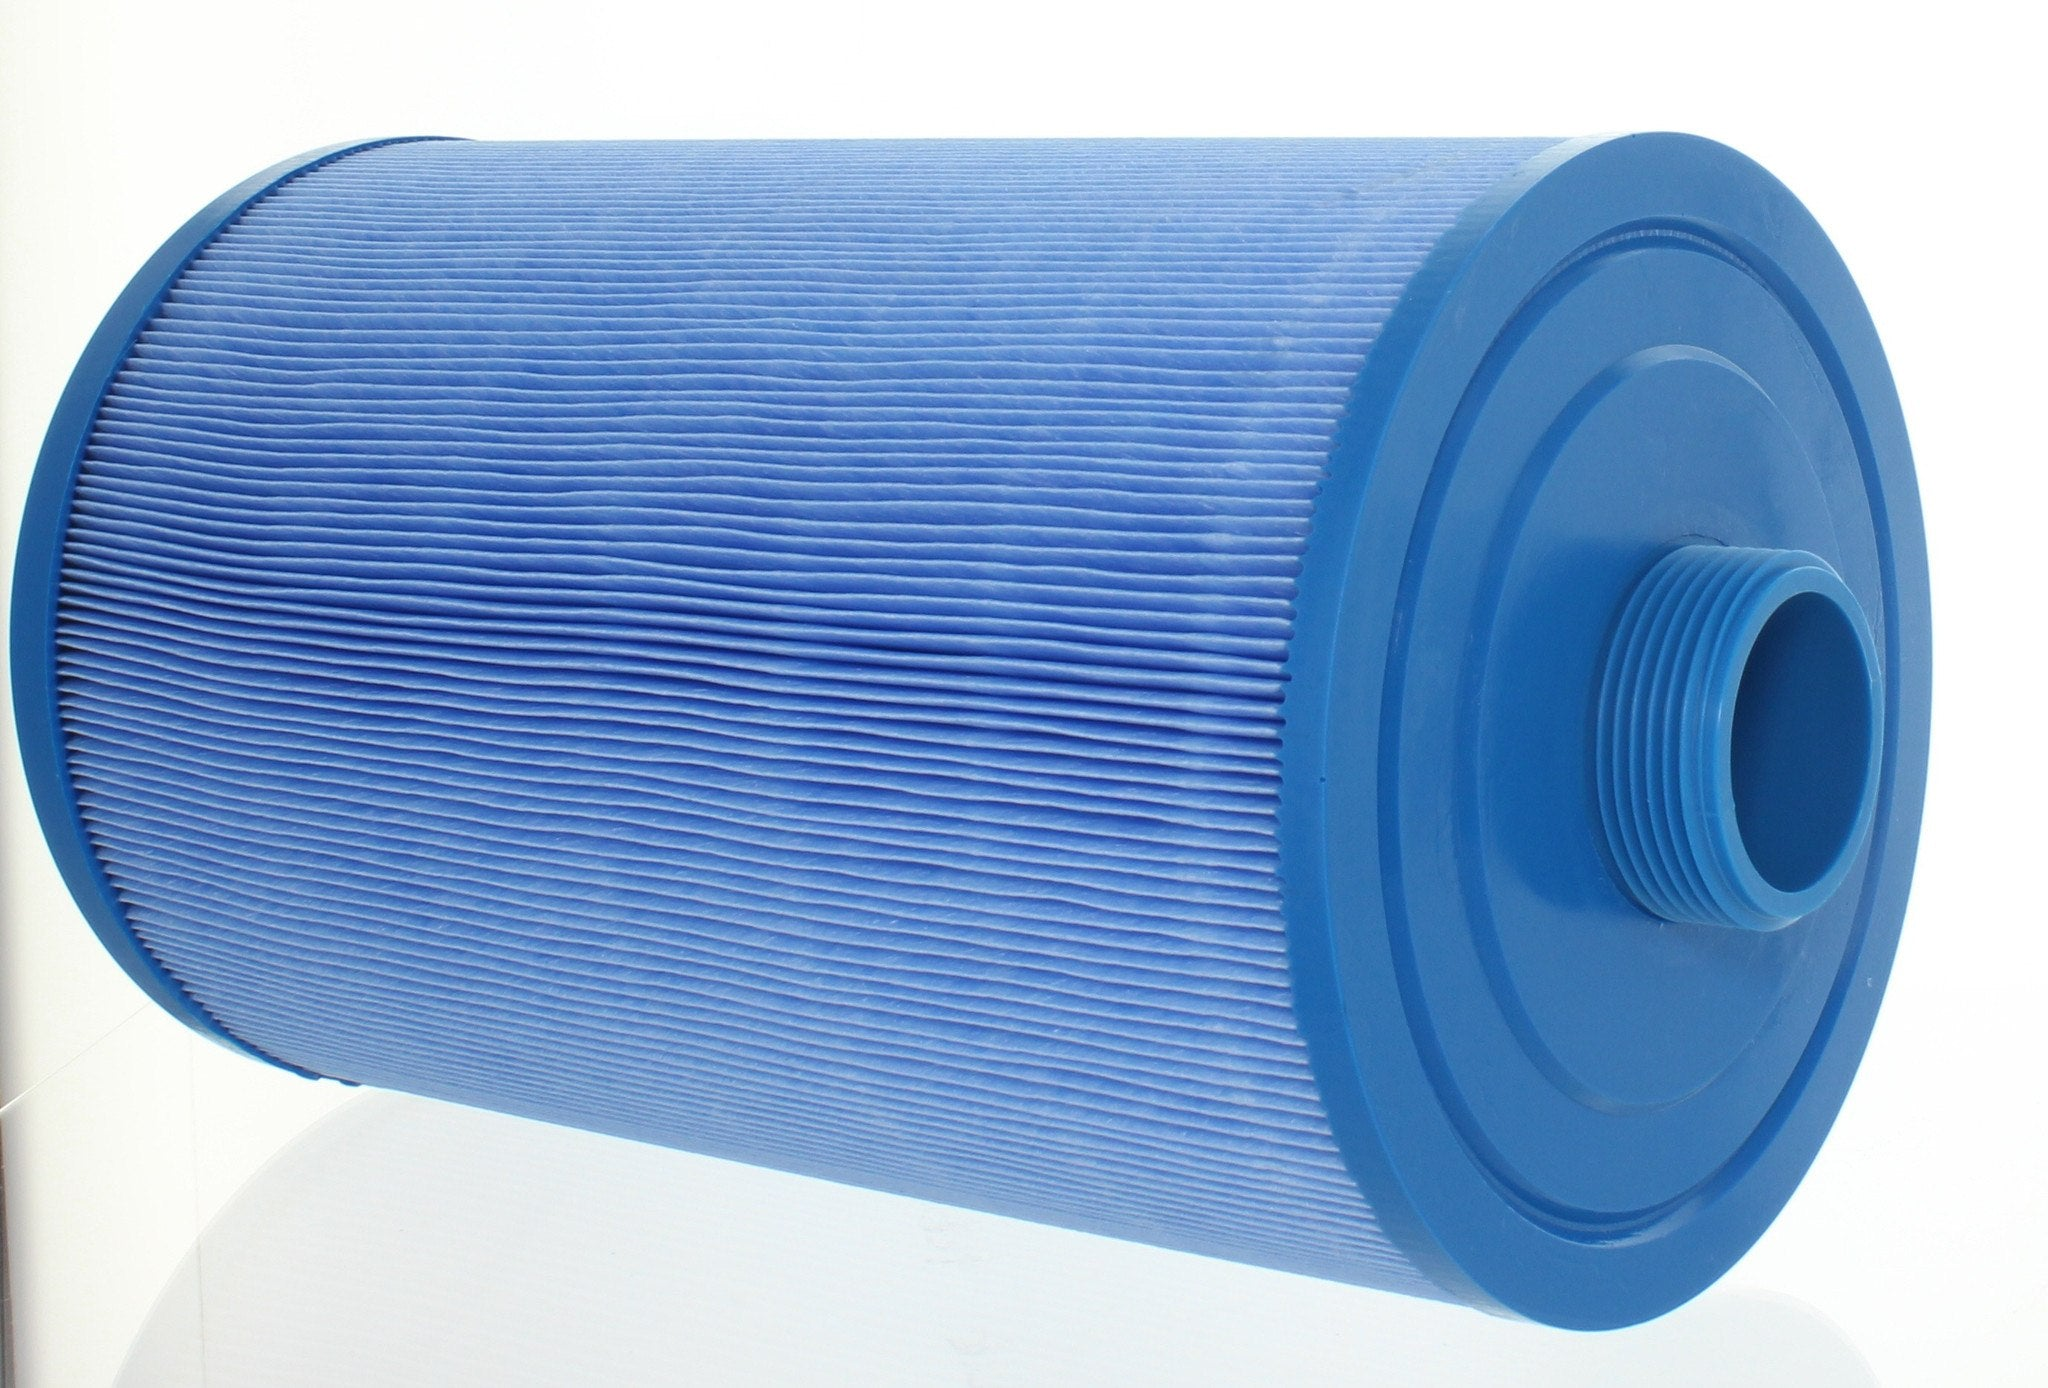 Replaces Unicel 6CH-47RA, Pleatco PTL47W-P4-M • Antimicrobial Hot Tub & Spa Filter Cartridge-Filter Cartridge-FilterDeal.com